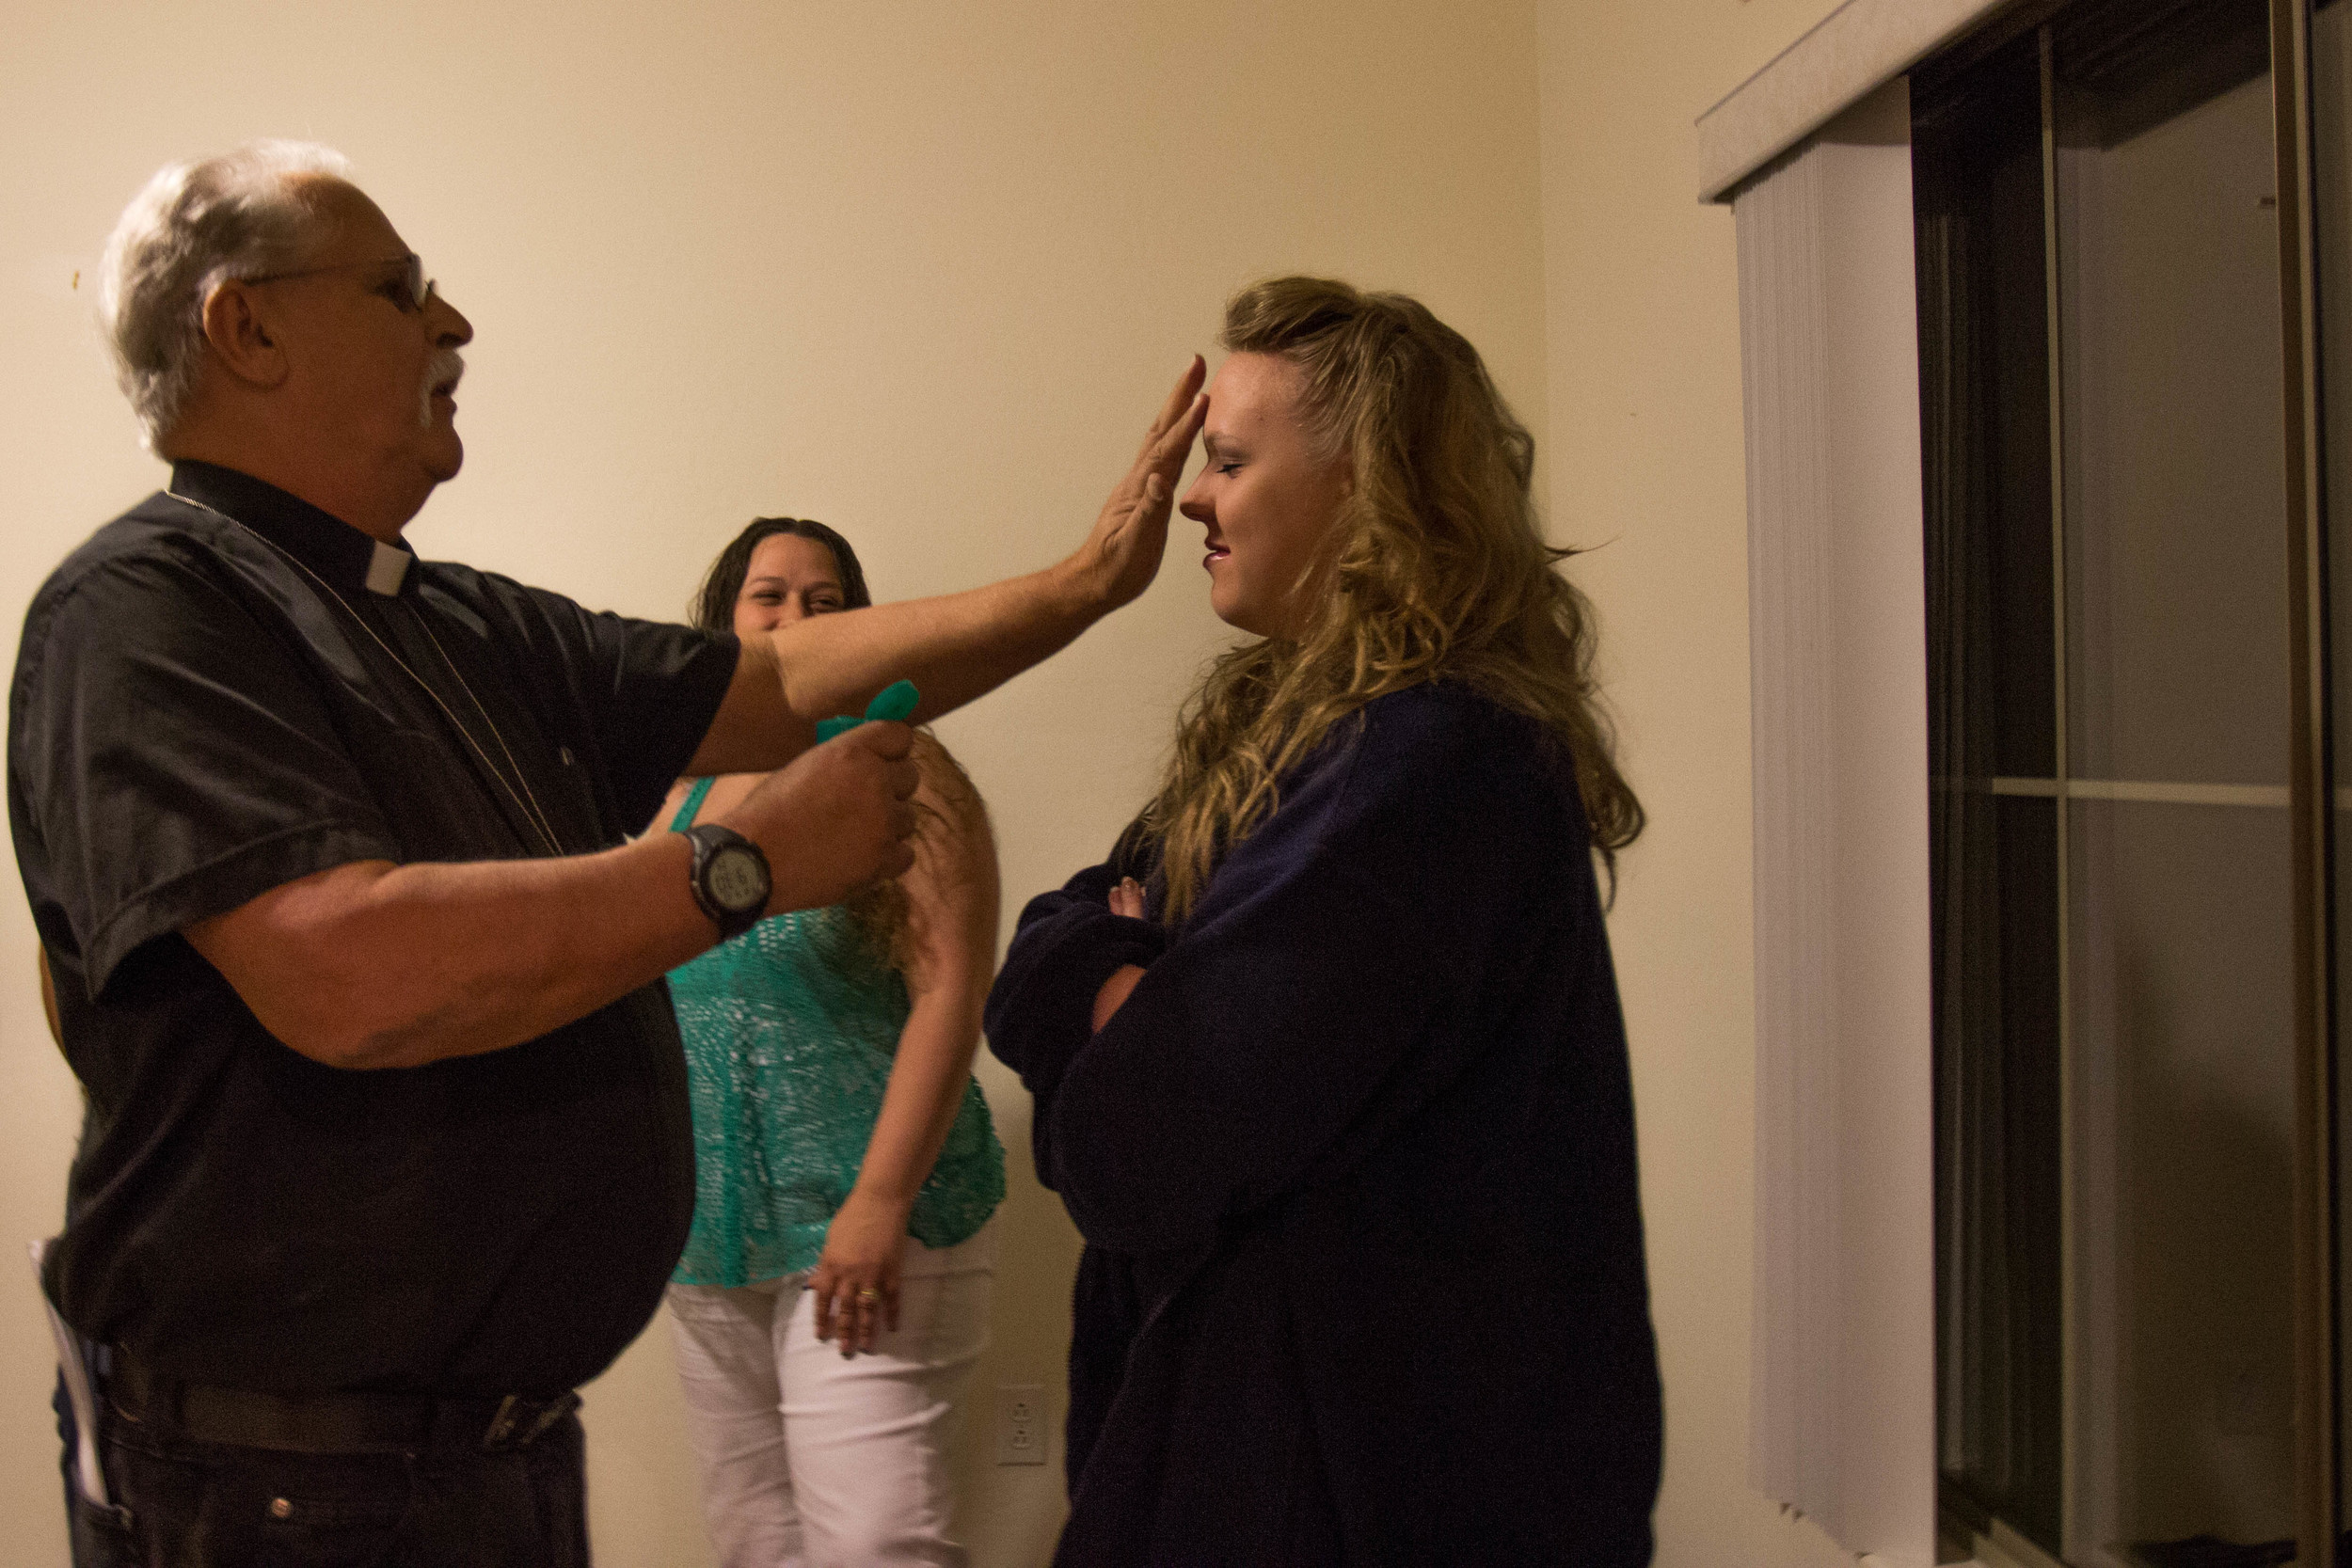 Ordained Minister and COPS crew investigator Paul Lovegrove applies holy water to investigators' foreheads before the investigation at the Superstition Mountain residence begins Friday night. (Photo by Gretchen Burnton)